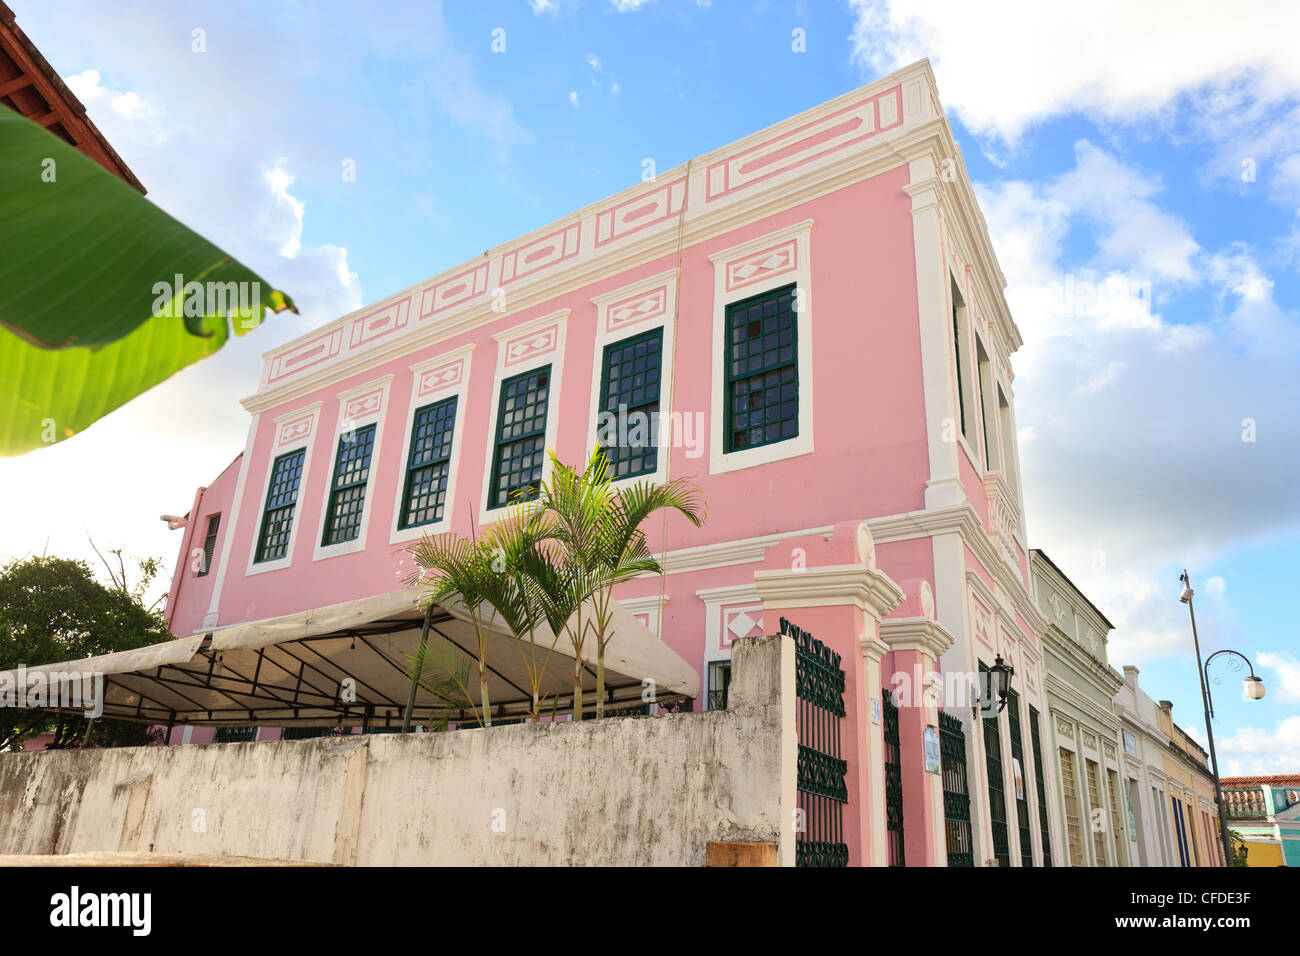 Colorful Colonial Houses Stock Photos & Colorful Colonial Houses ...